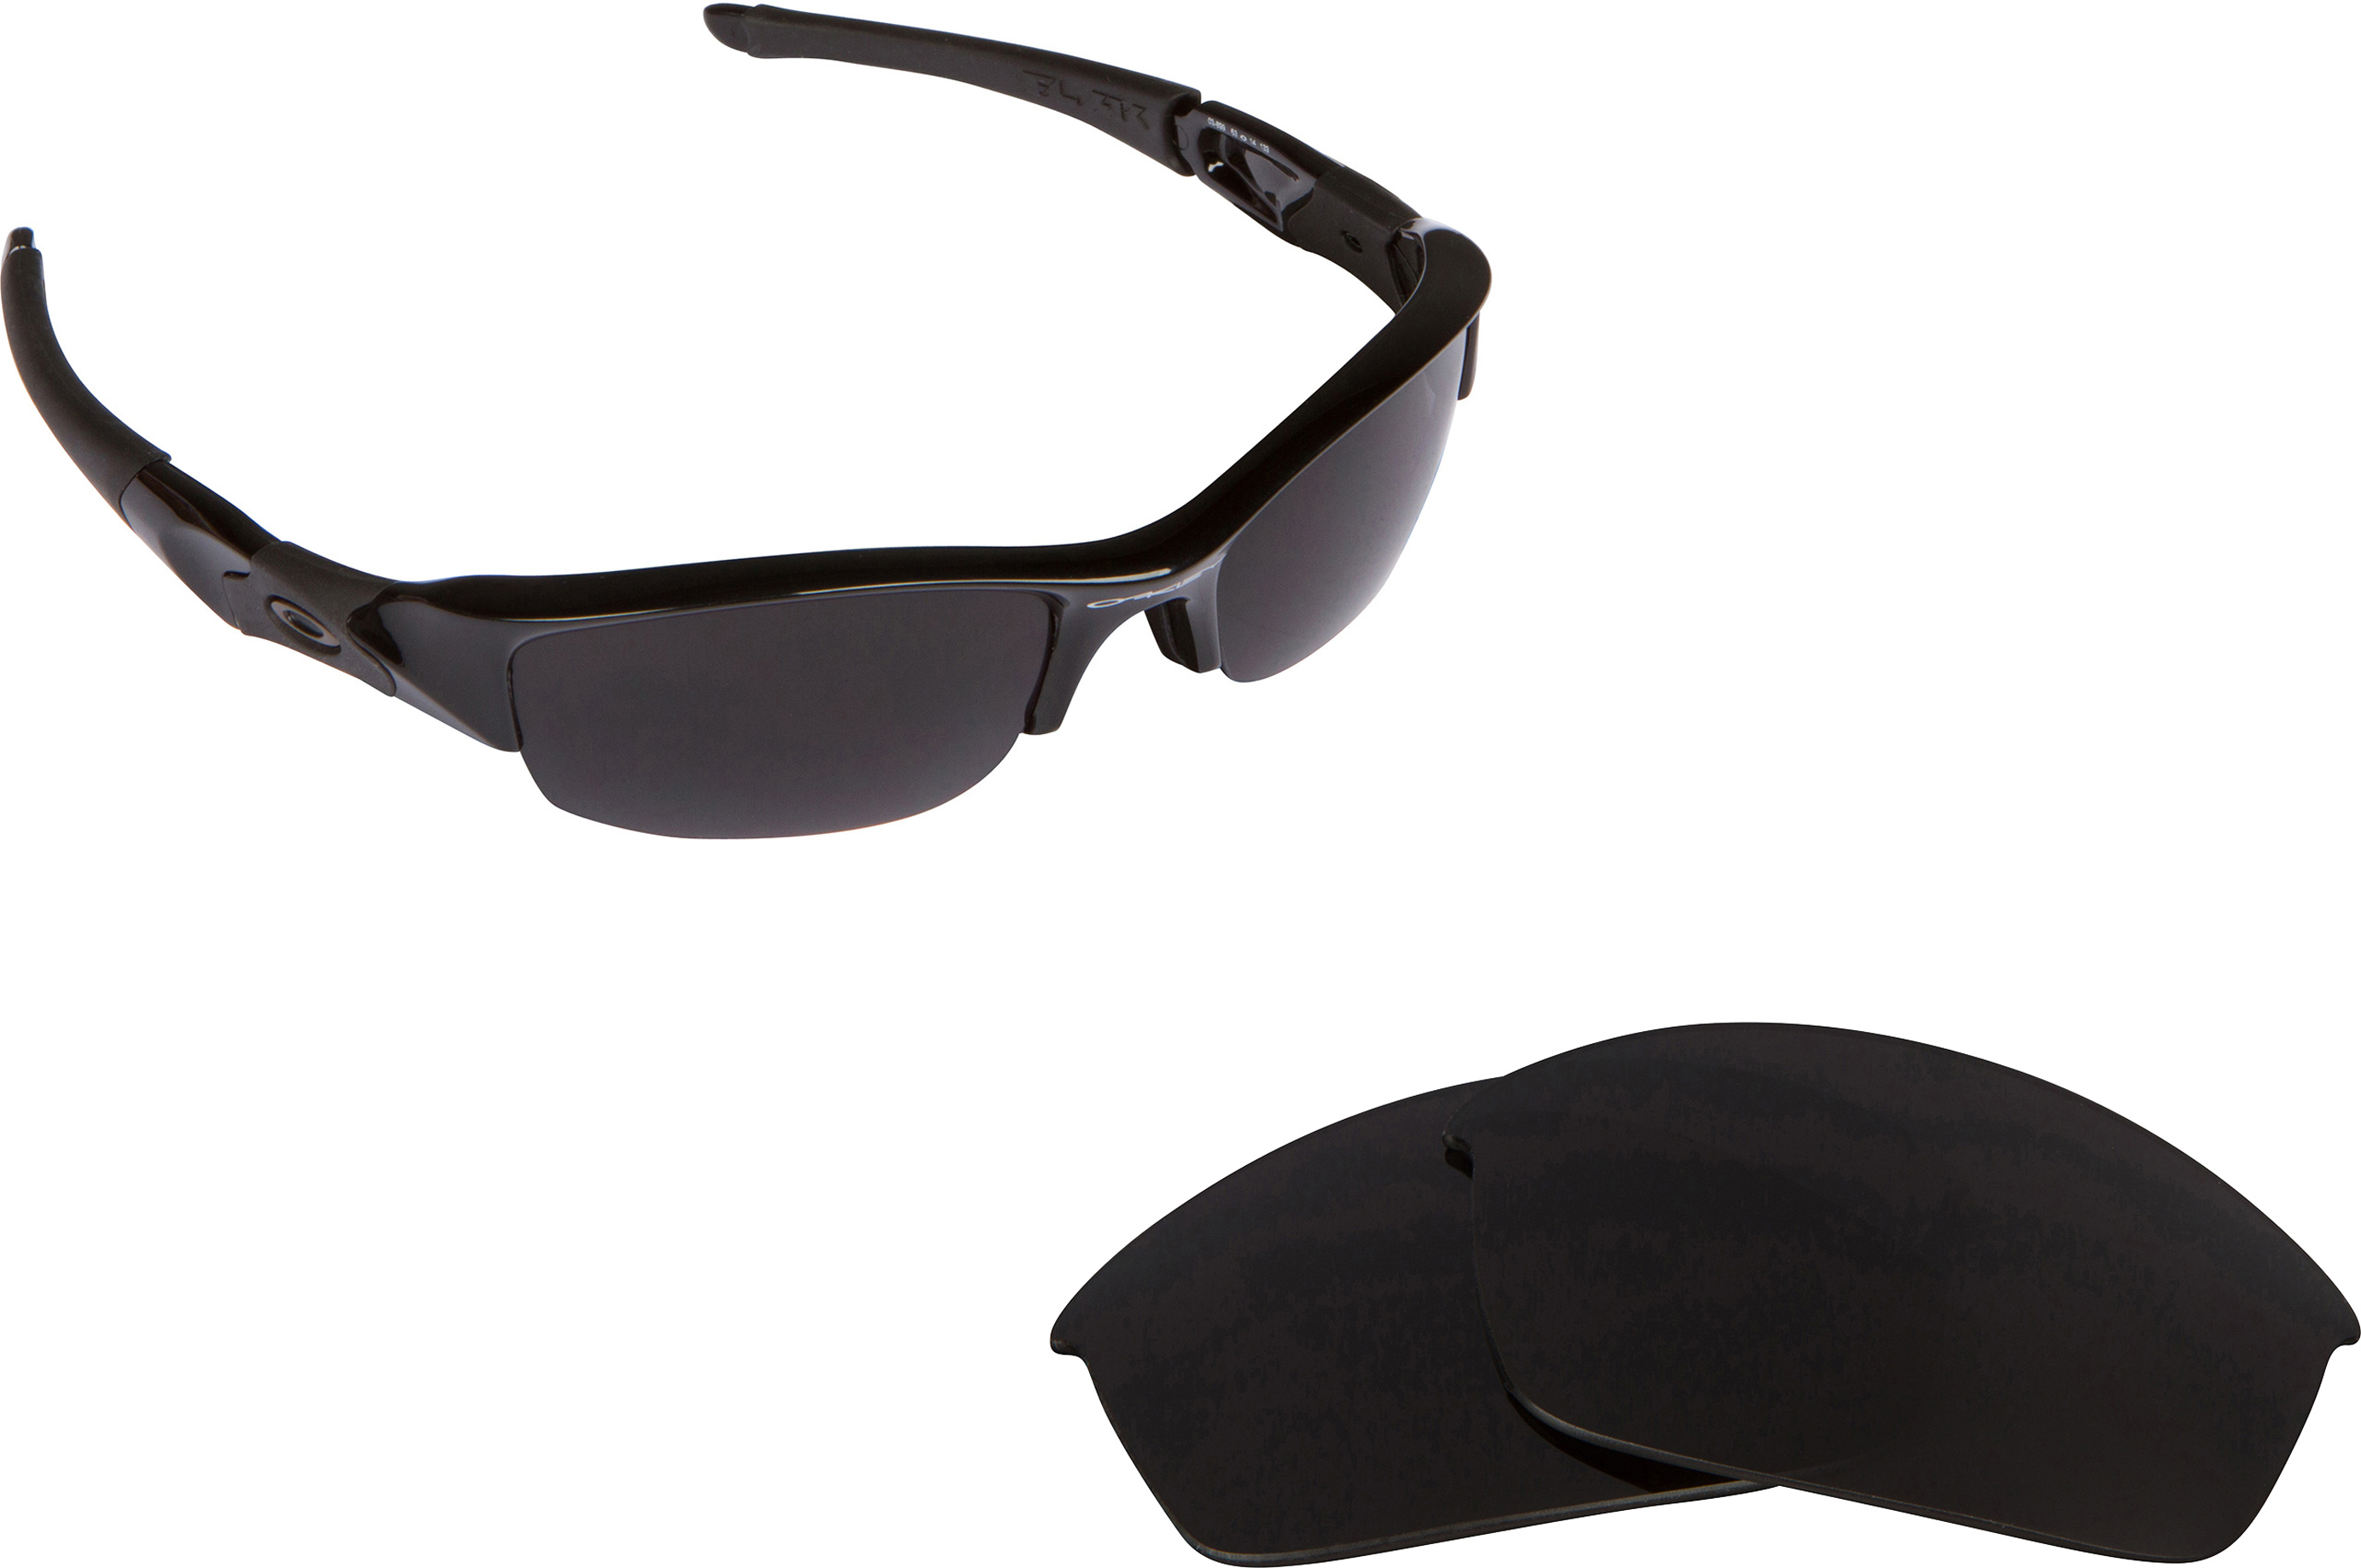 d97d5661fe Oakley Flak Jacket Replacement Lenses Ebay « Heritage Malta